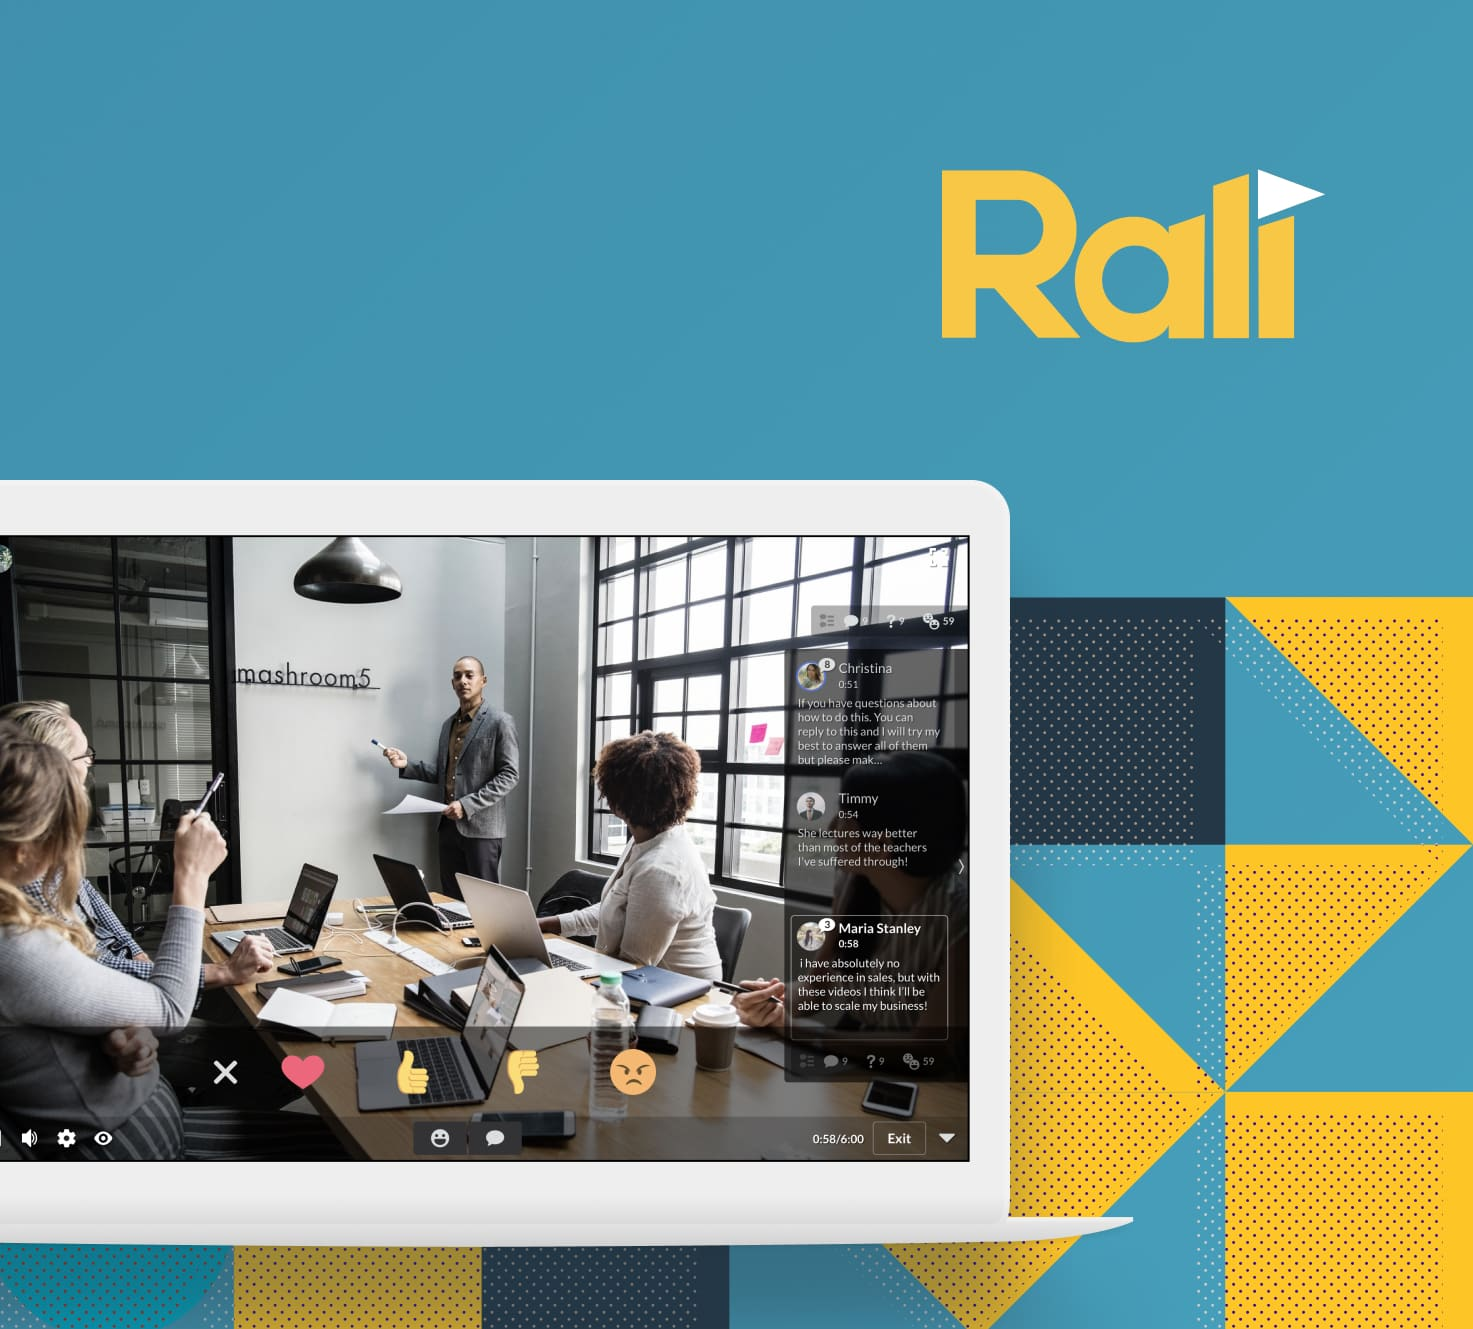 A mockup of the Rali in-browser product.